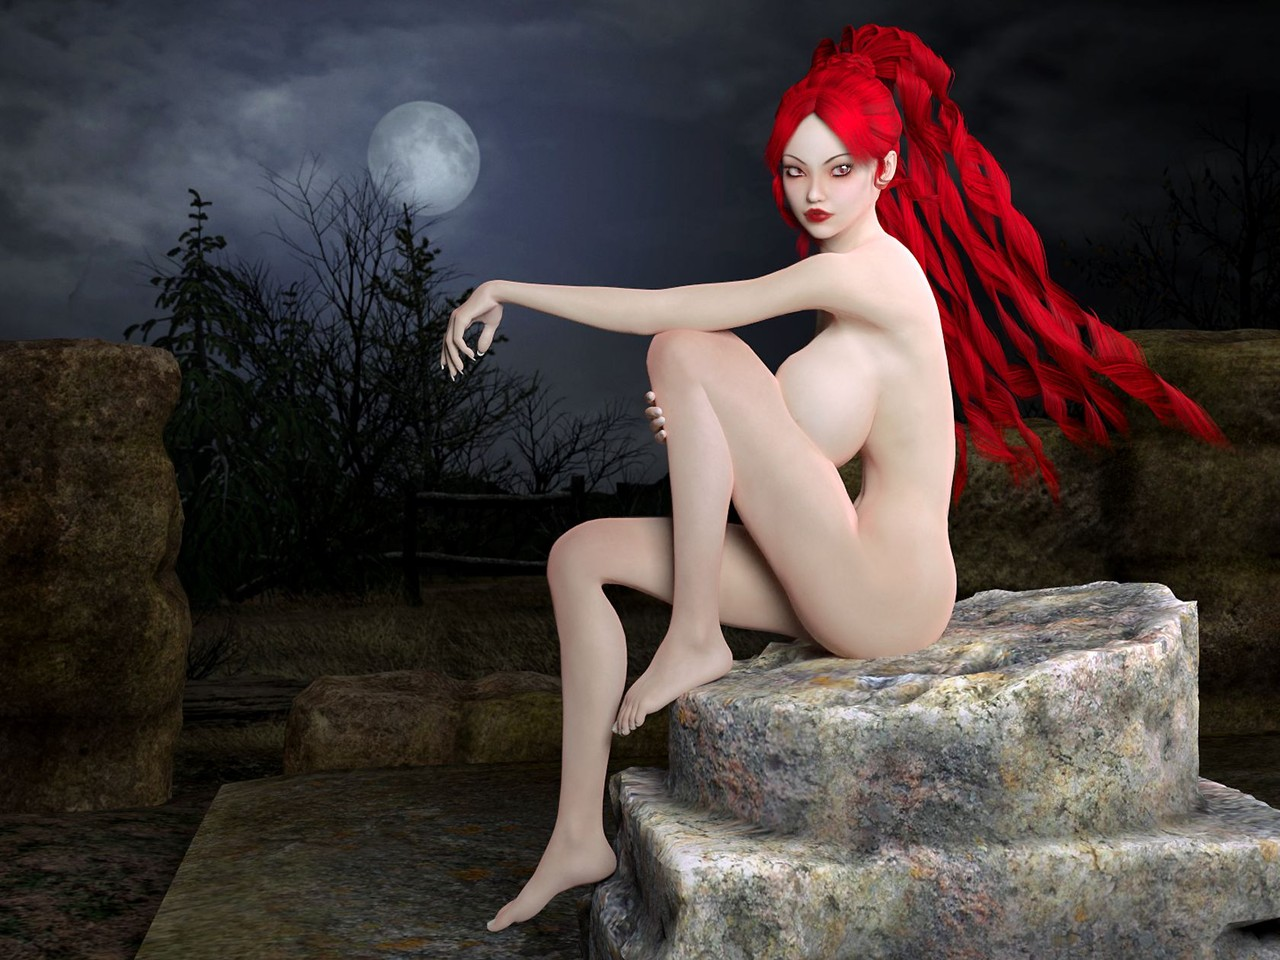 full_moon nude night154